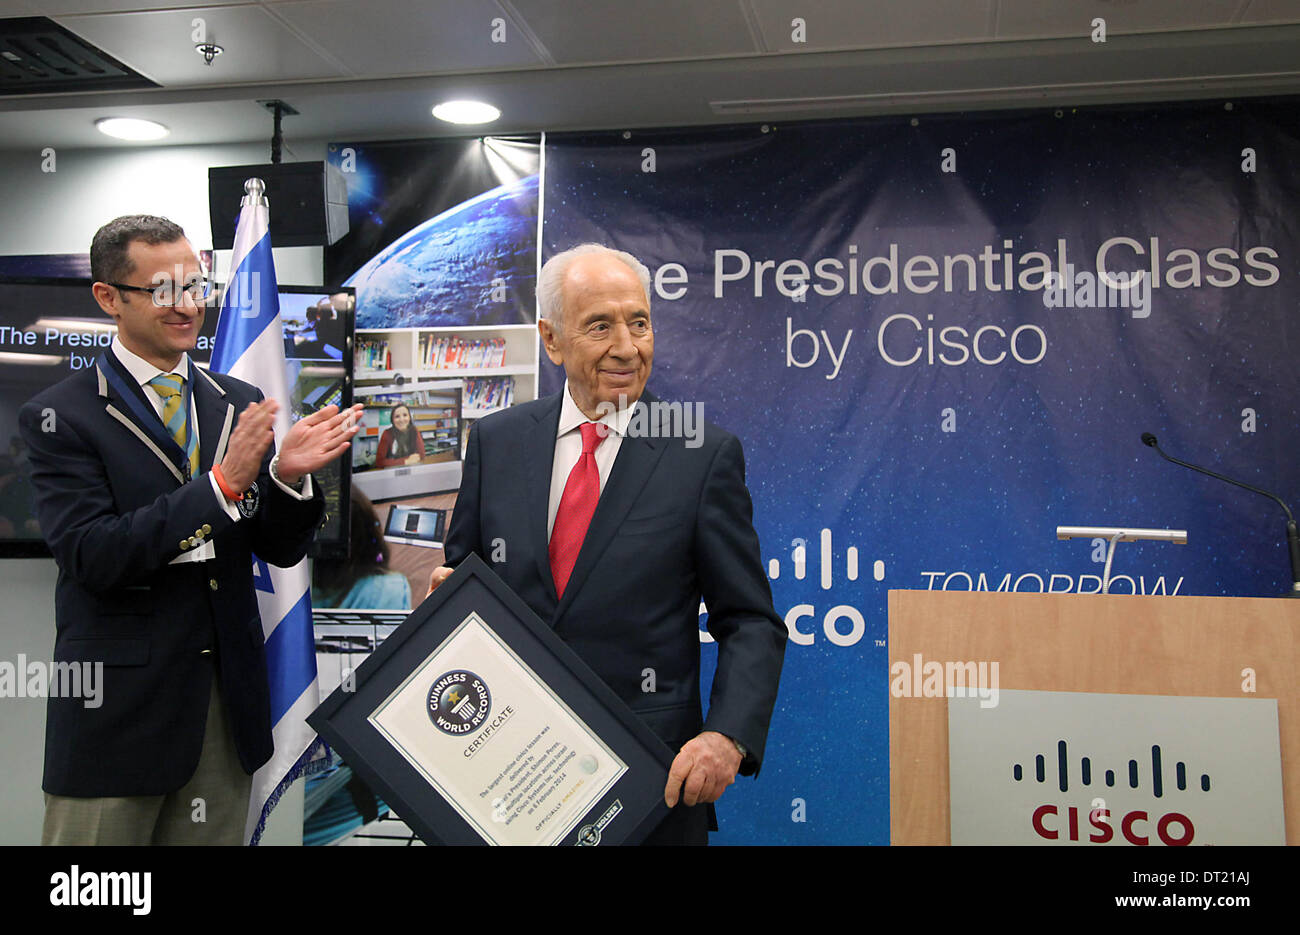 (140206) -- NETANYA (ISRAEL), Feb. 6, 2014 (Xinhua) -- Israeli President Shimon Peres (R) receives a certificate of the Guinness World Record for the largest online civics lesson from Guinness World Records Senior Vice President Marco Frigatti (L) in the Cisco headquarters in Netanya, Israel, on Feb. 6, 2014. Peres and over 9000 high school students across Israel, using Cisco Systems Telepresence technology, broke the Guinness World Record for the largest online civics lesson. Over 8500 students heard Peres live and some had the opportunity to ask him questions. (Xinhua/JINI/Gidon Markovitz) - Stock Image